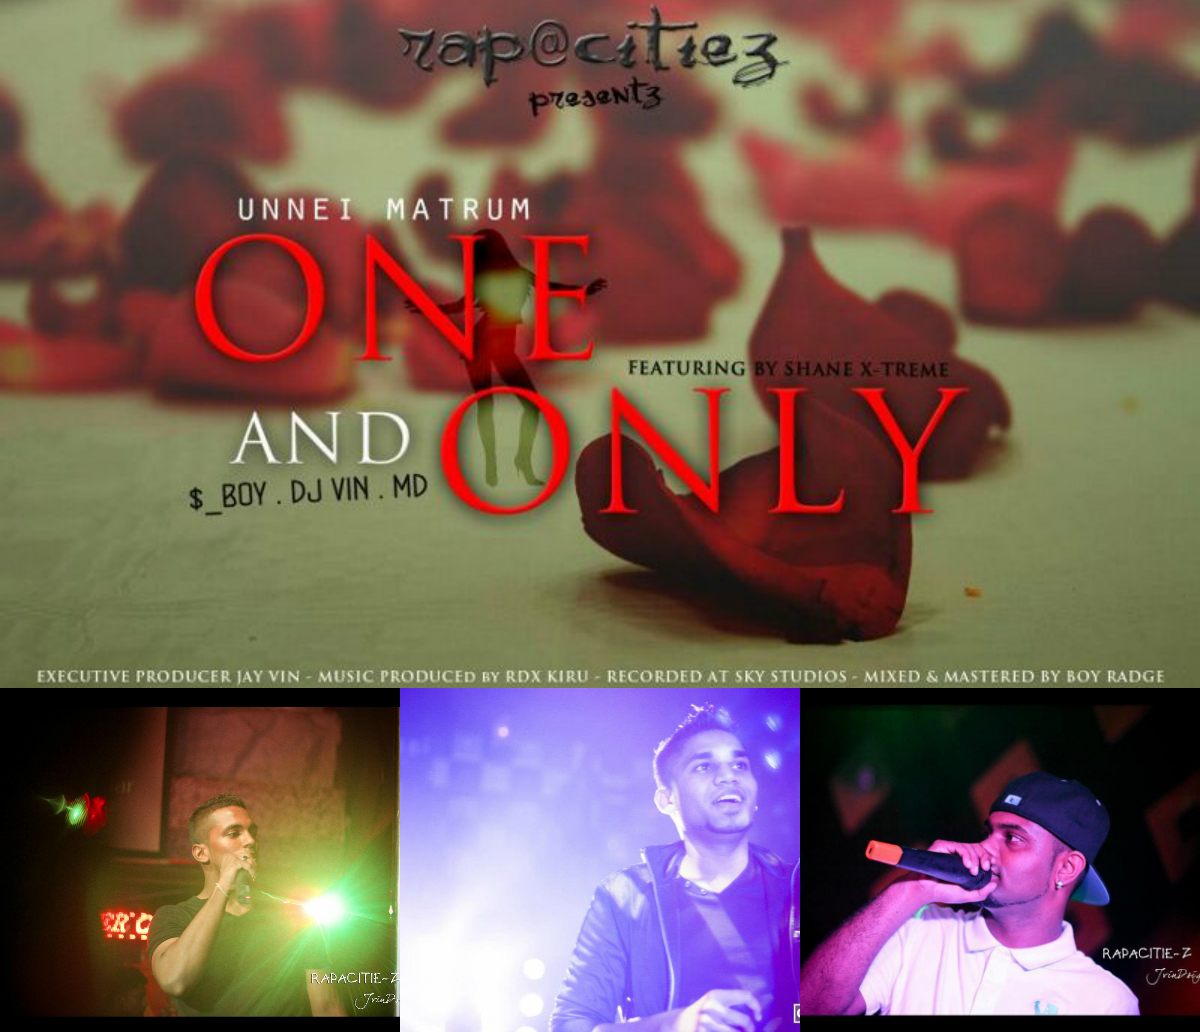 One And Only [ Unnai Mattum ] -  Rapacitiez, $_Boy, DJ Vin, Mista D feat. Shane Xtreme